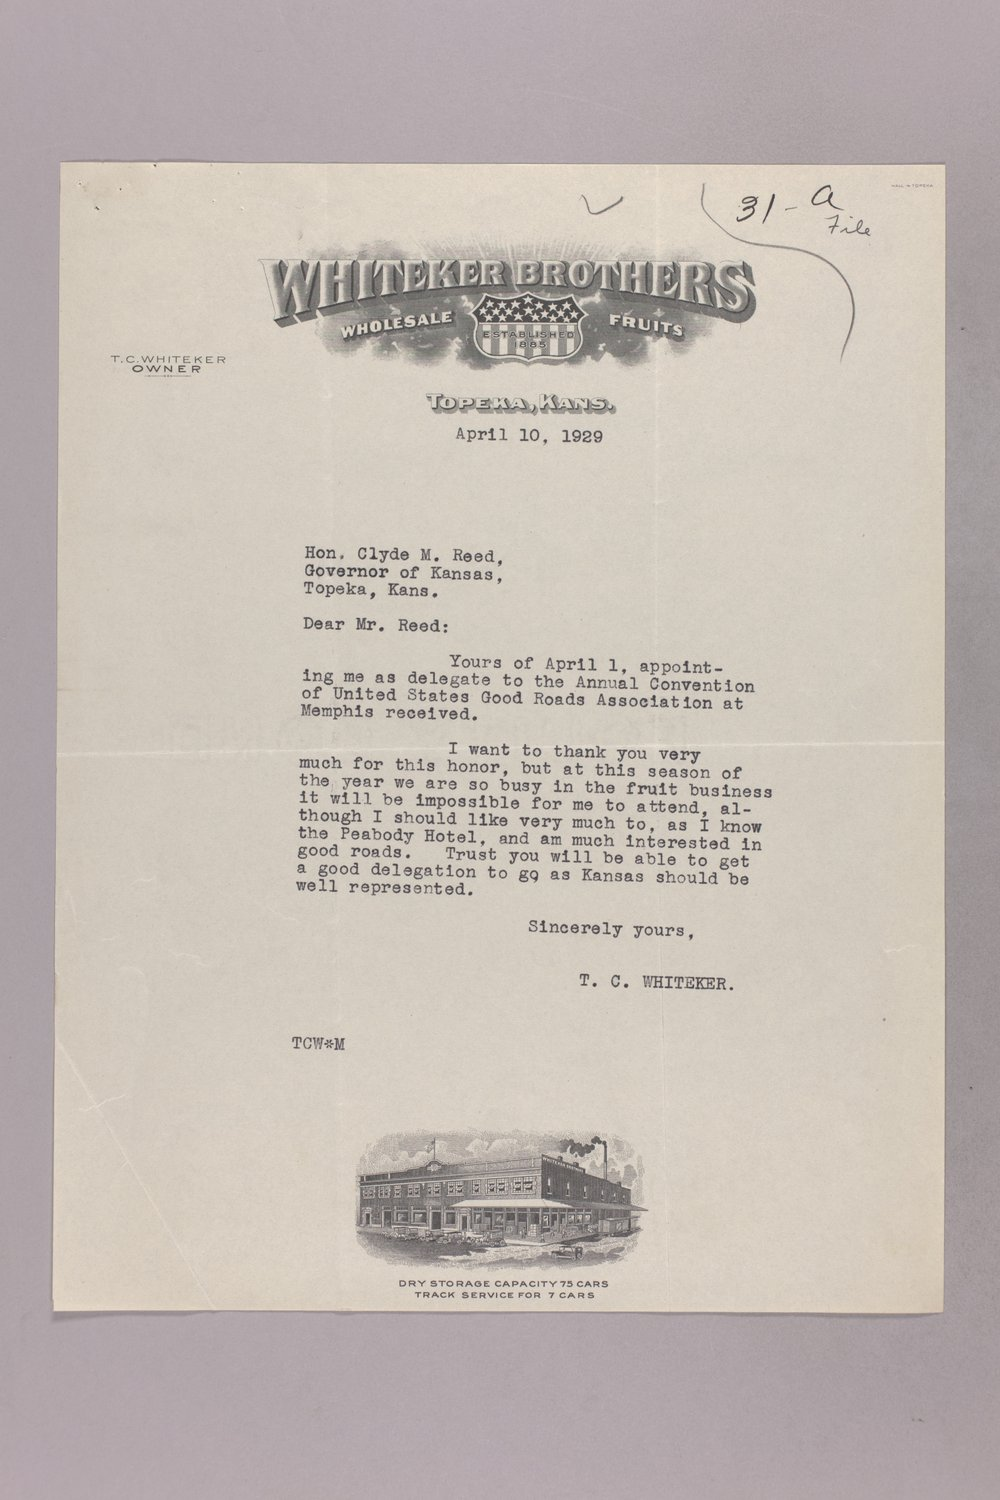 Governor Clyde M. Reed correspondence, honorary appointments - 3